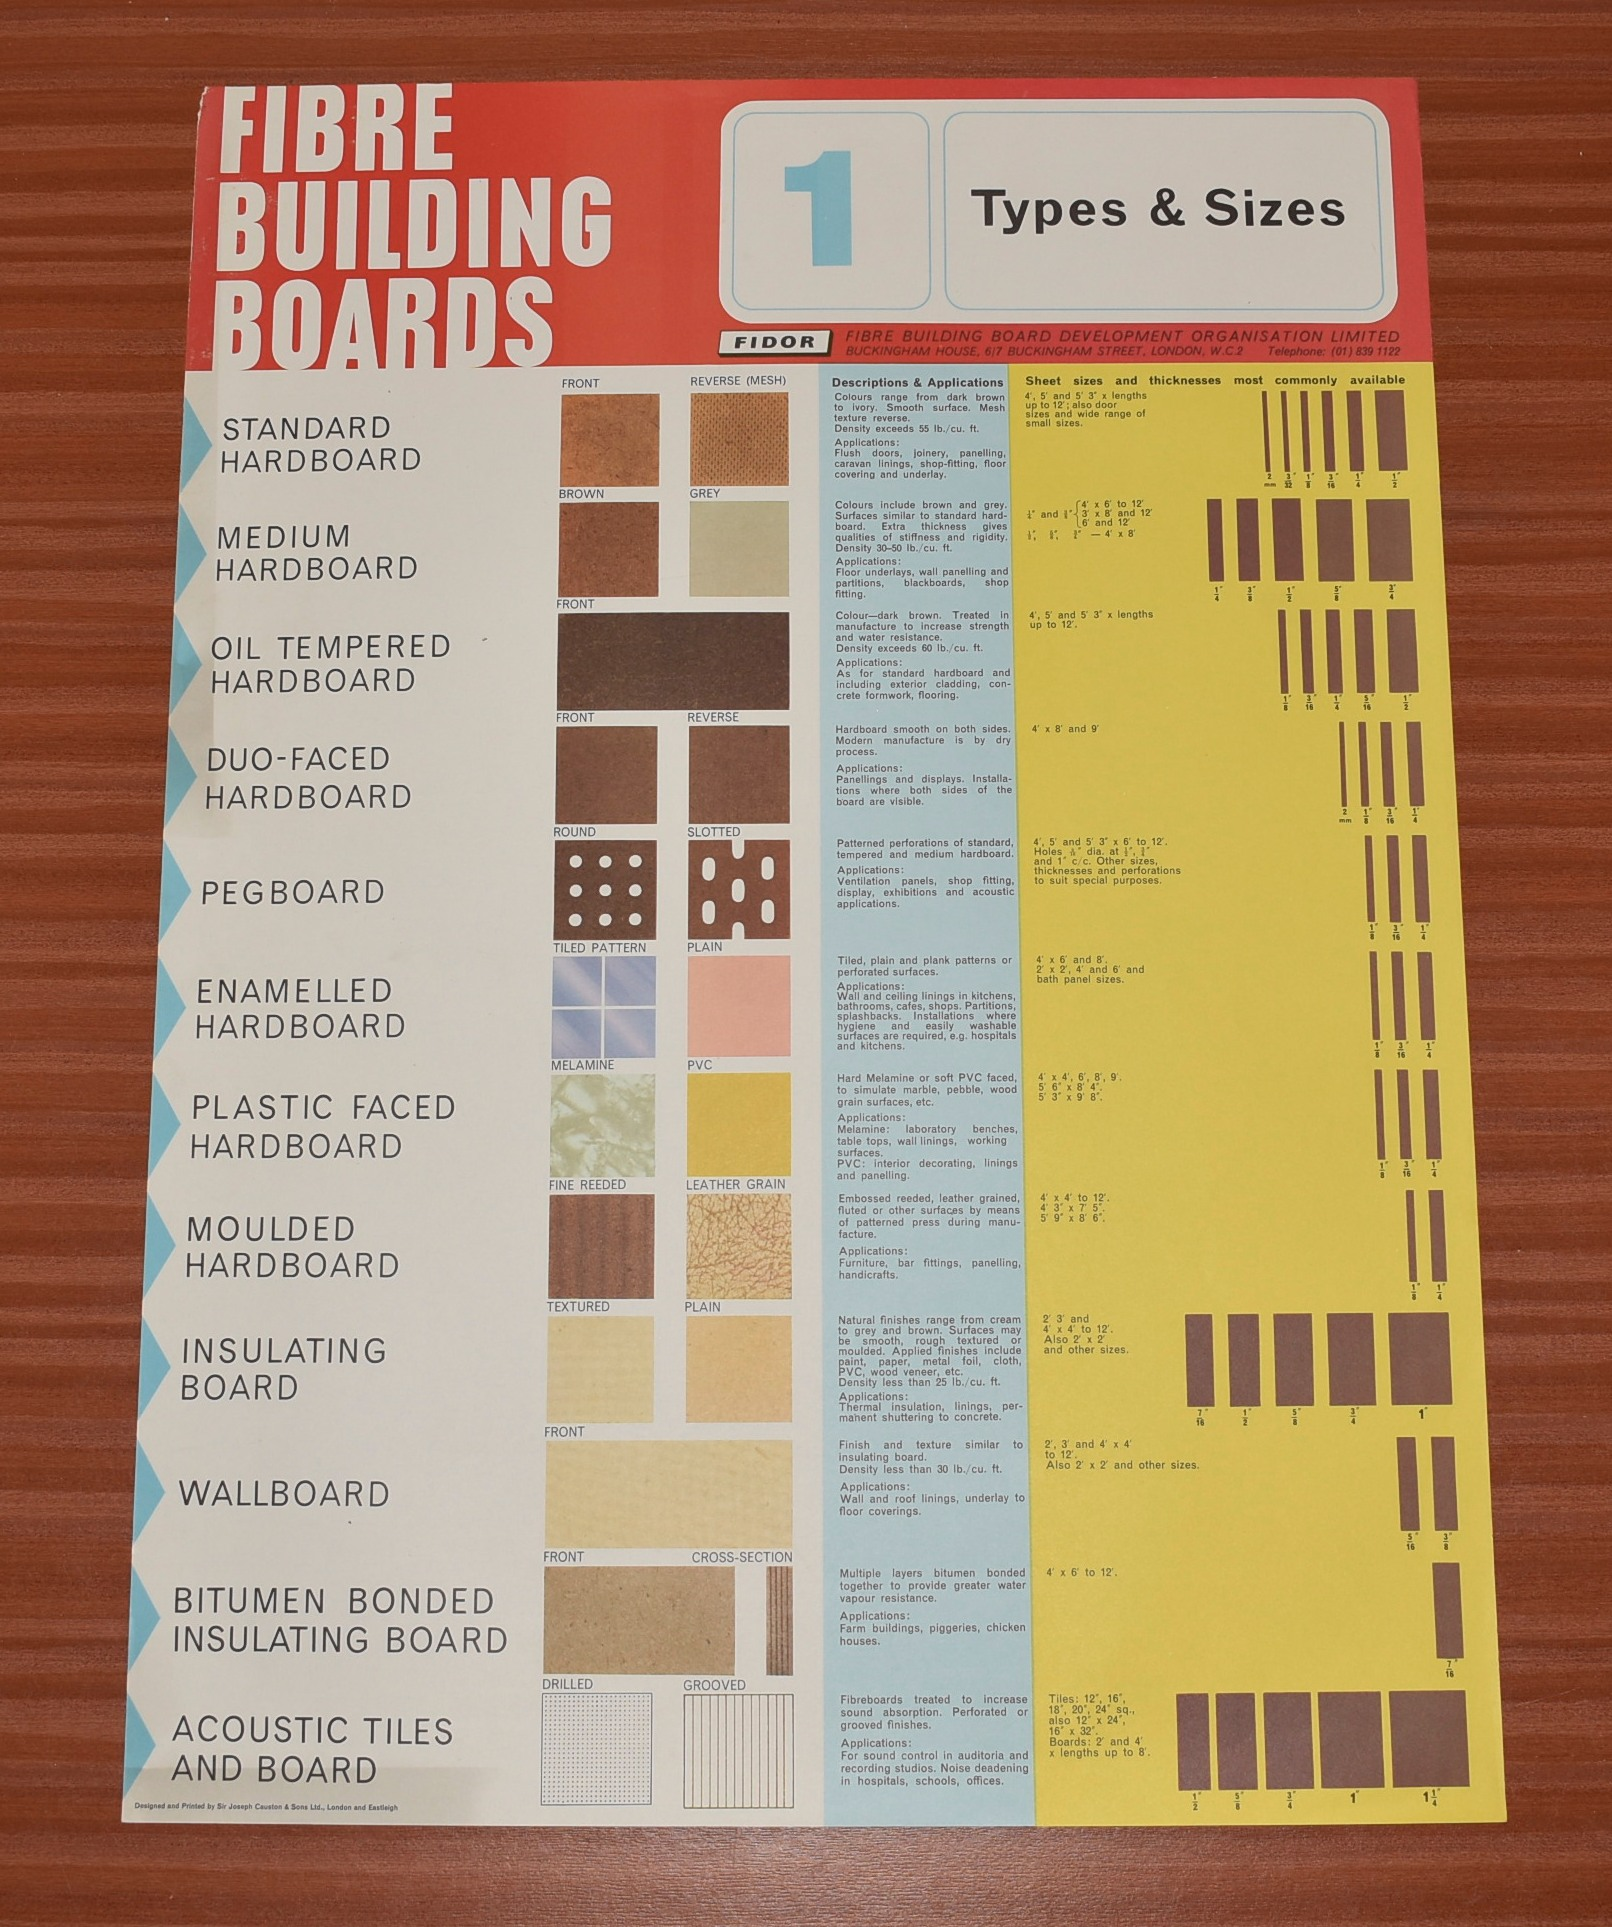 Image for ORIGINAL POSTER.  Fibre Building Boards. 1 - Types & Sizes